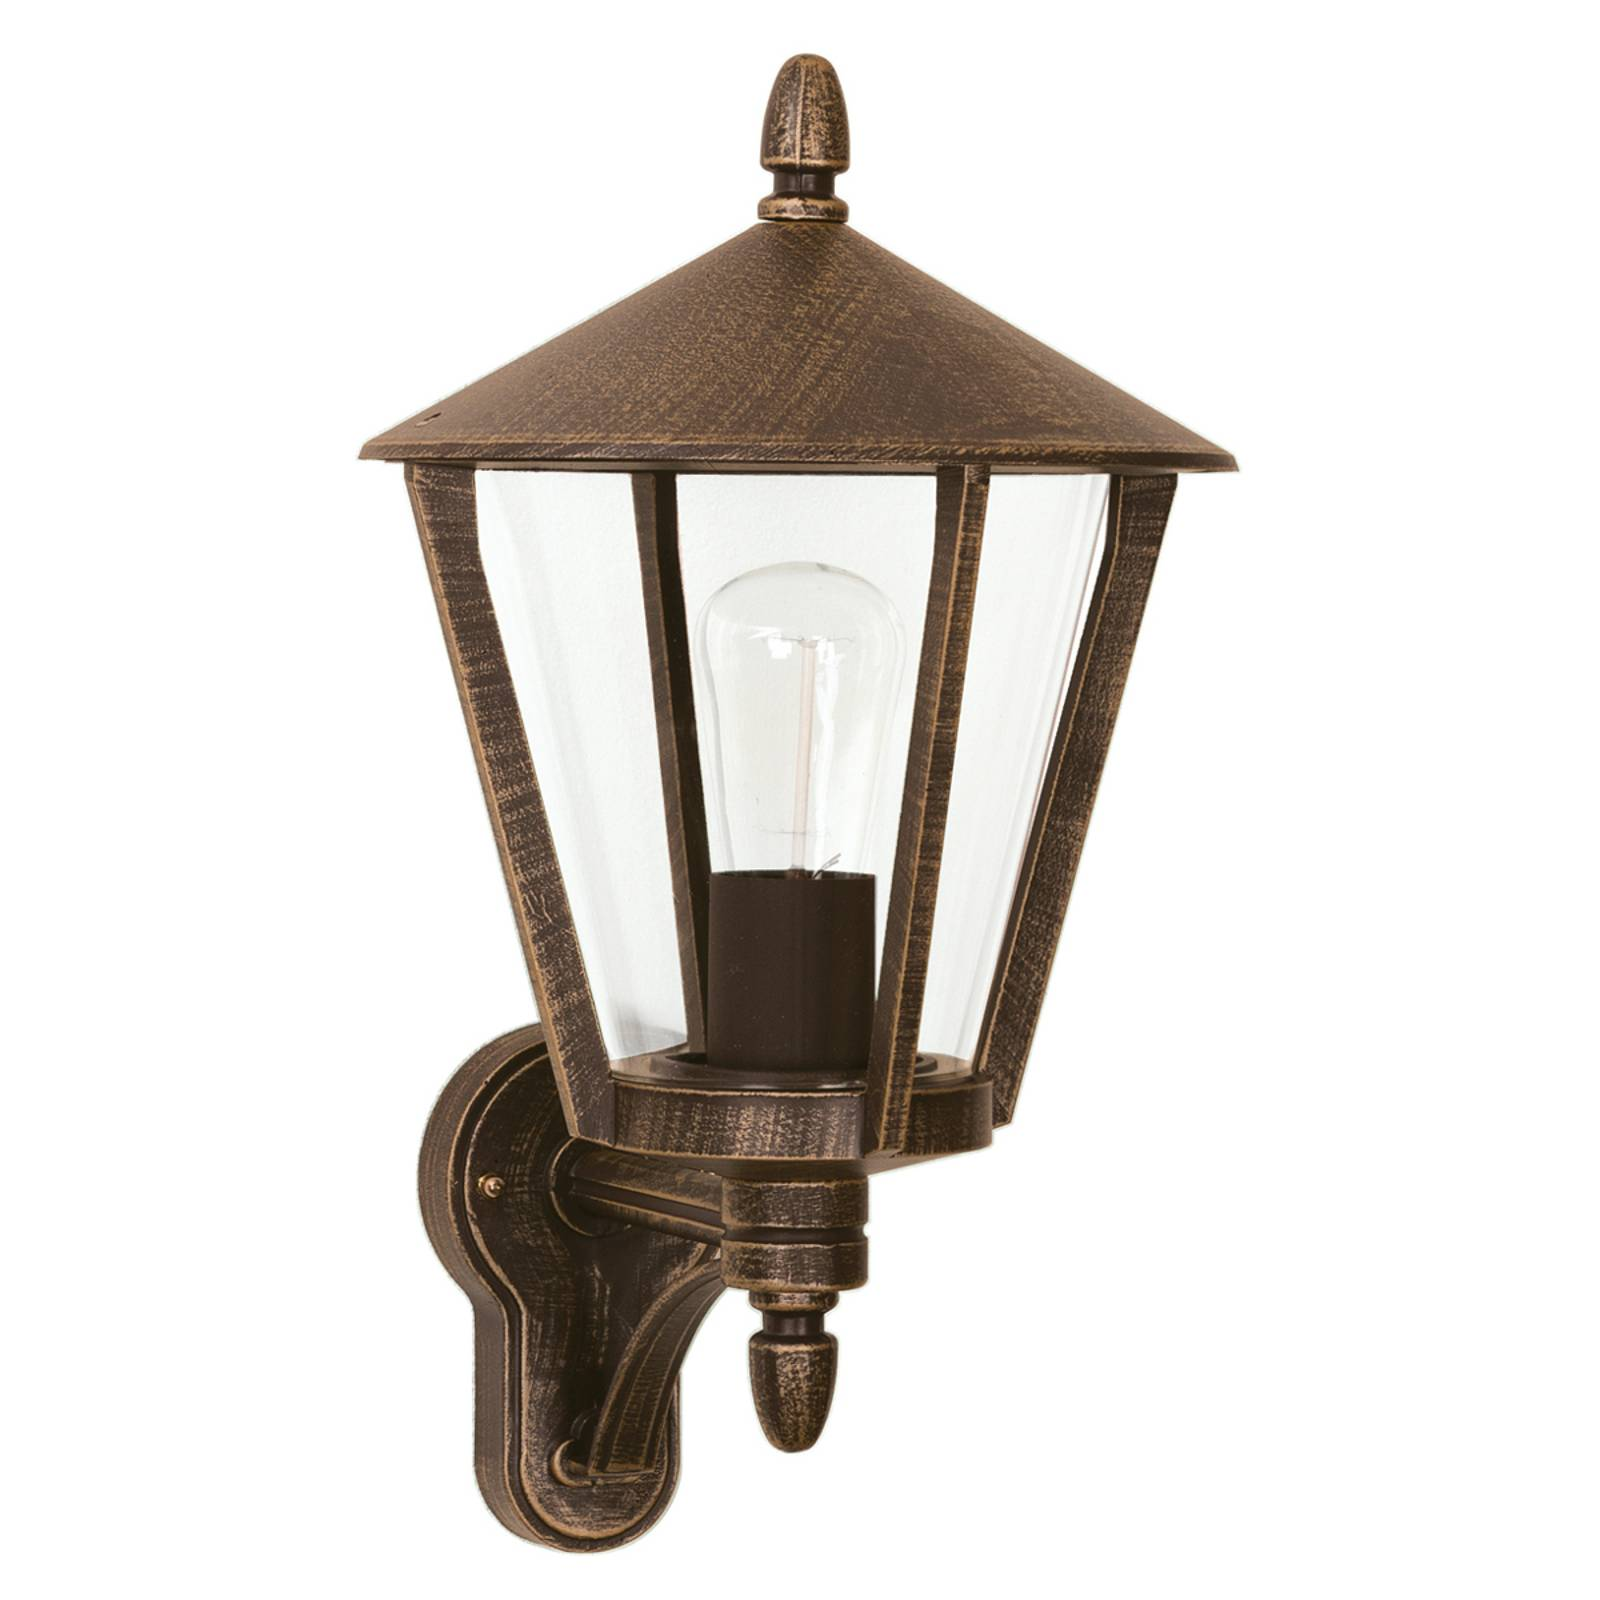 Stylish outdoor wall light 668, brown from Albert Leuchten